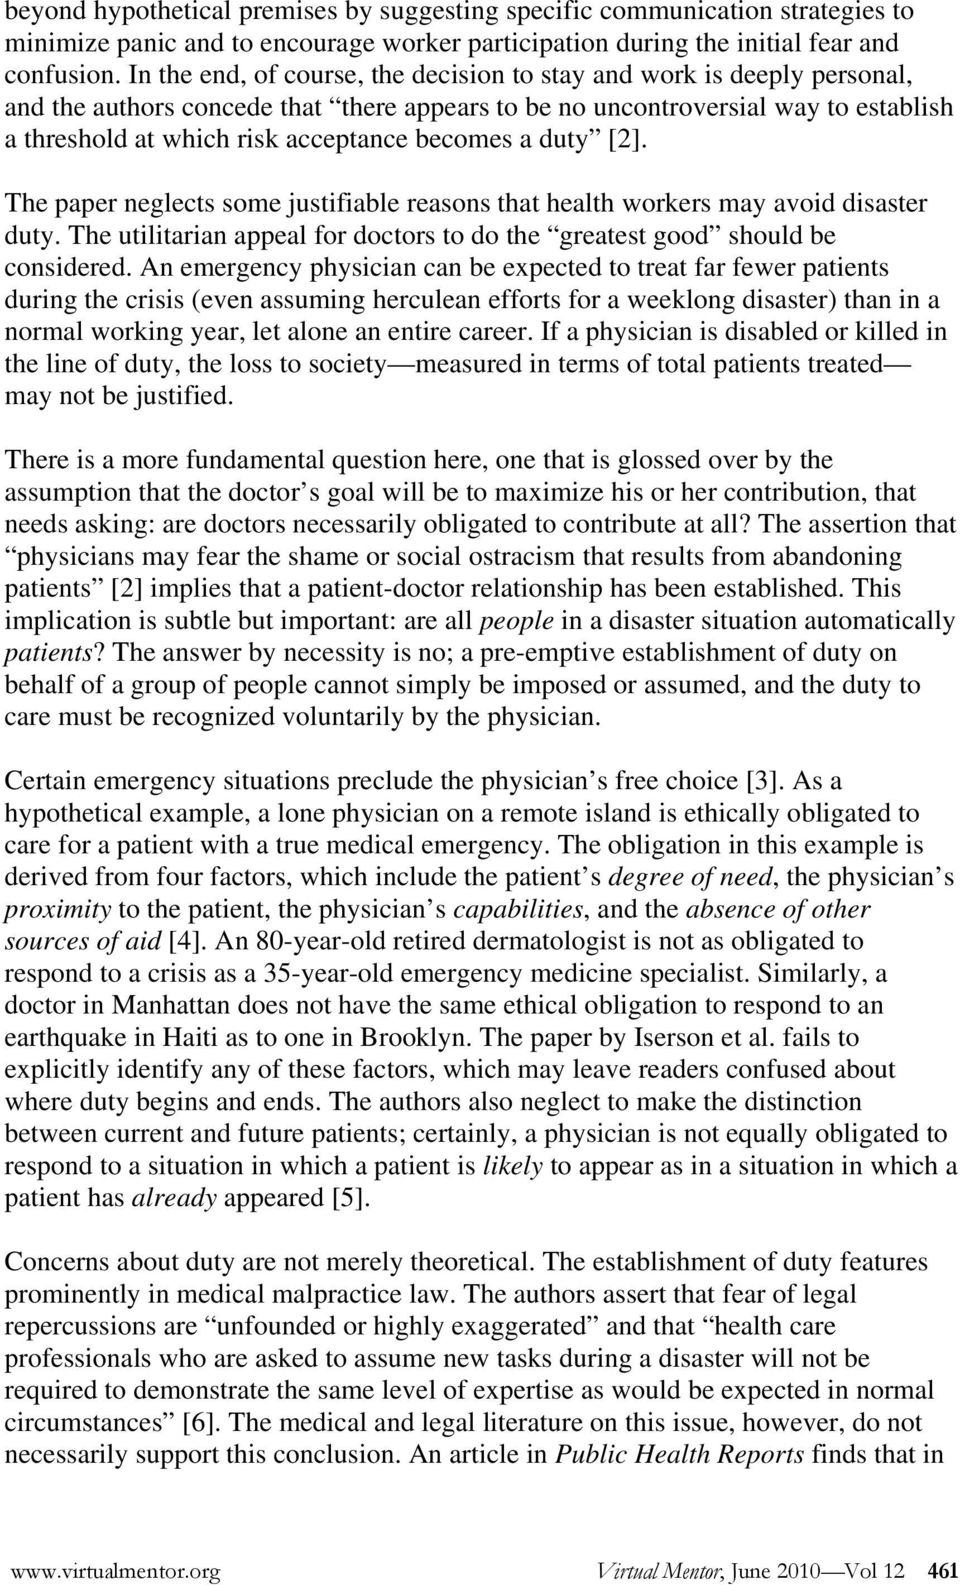 becomes a duty [2]. The paper neglects some justifiable reasons that health workers may avoid disaster duty. The utilitarian appeal for doctors to do the greatest good should be considered.